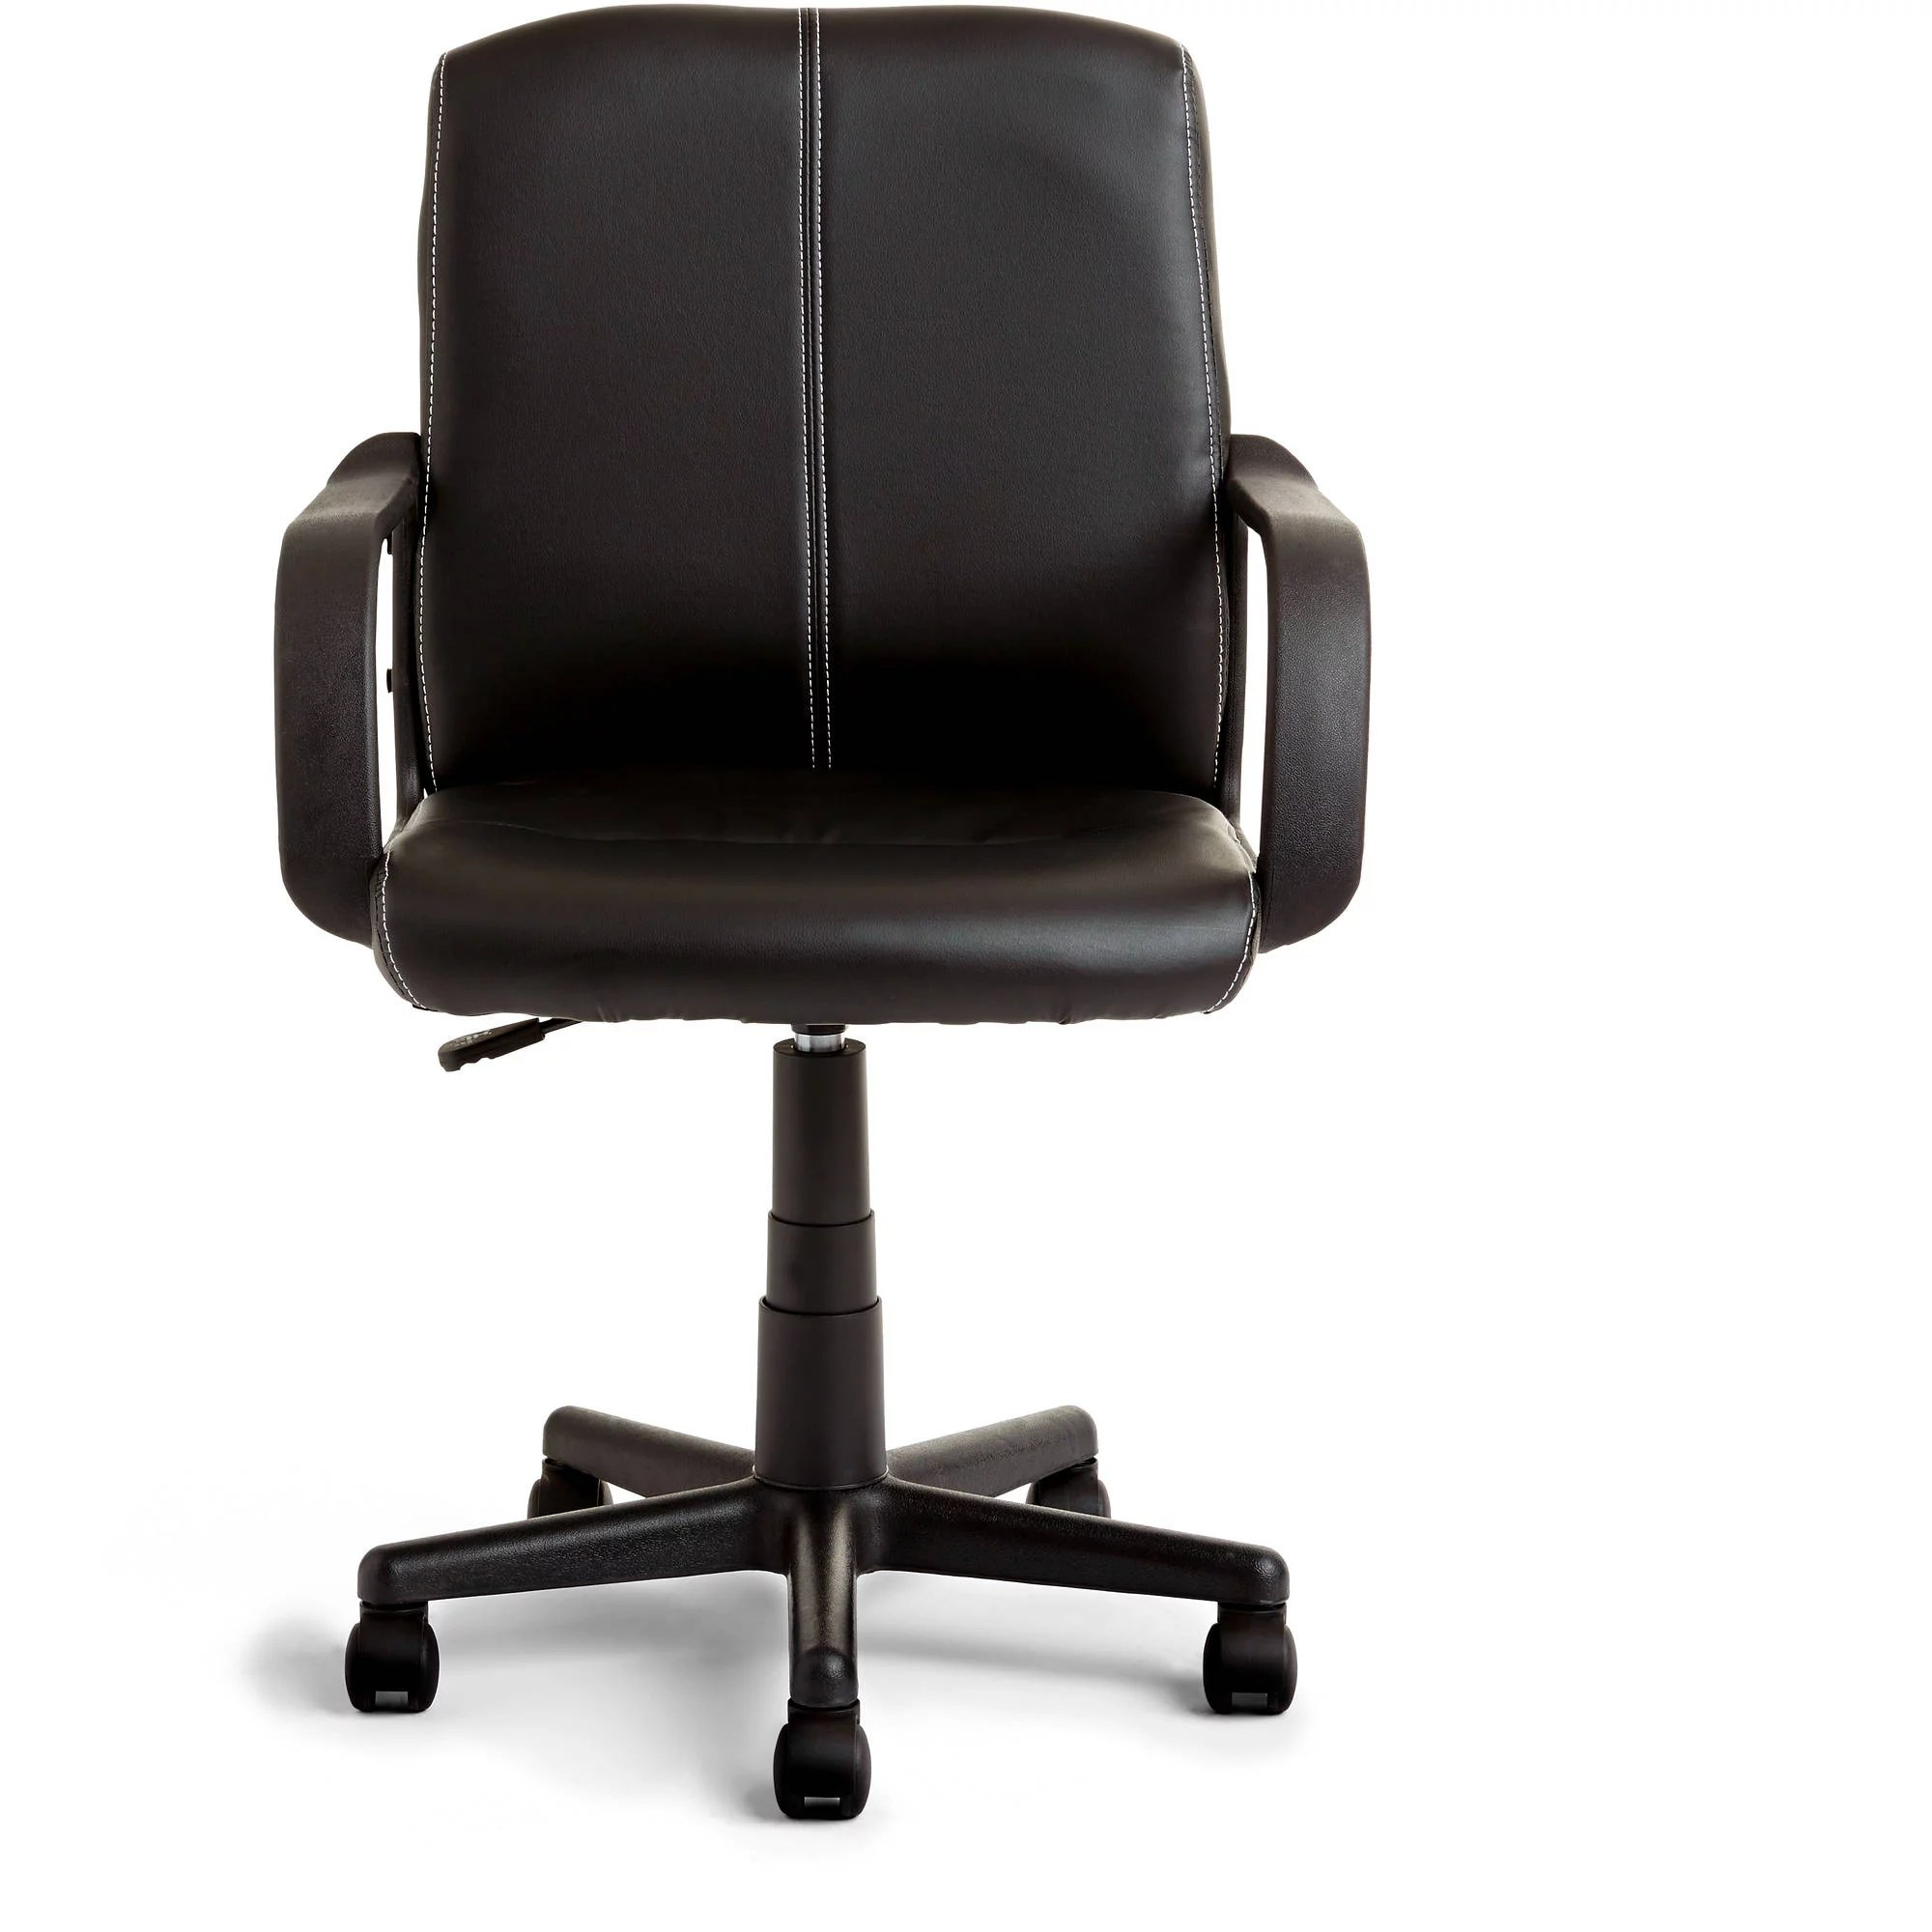 Mainstays Leather MidBack Rolling Swivel Office Chair  Walmartcom